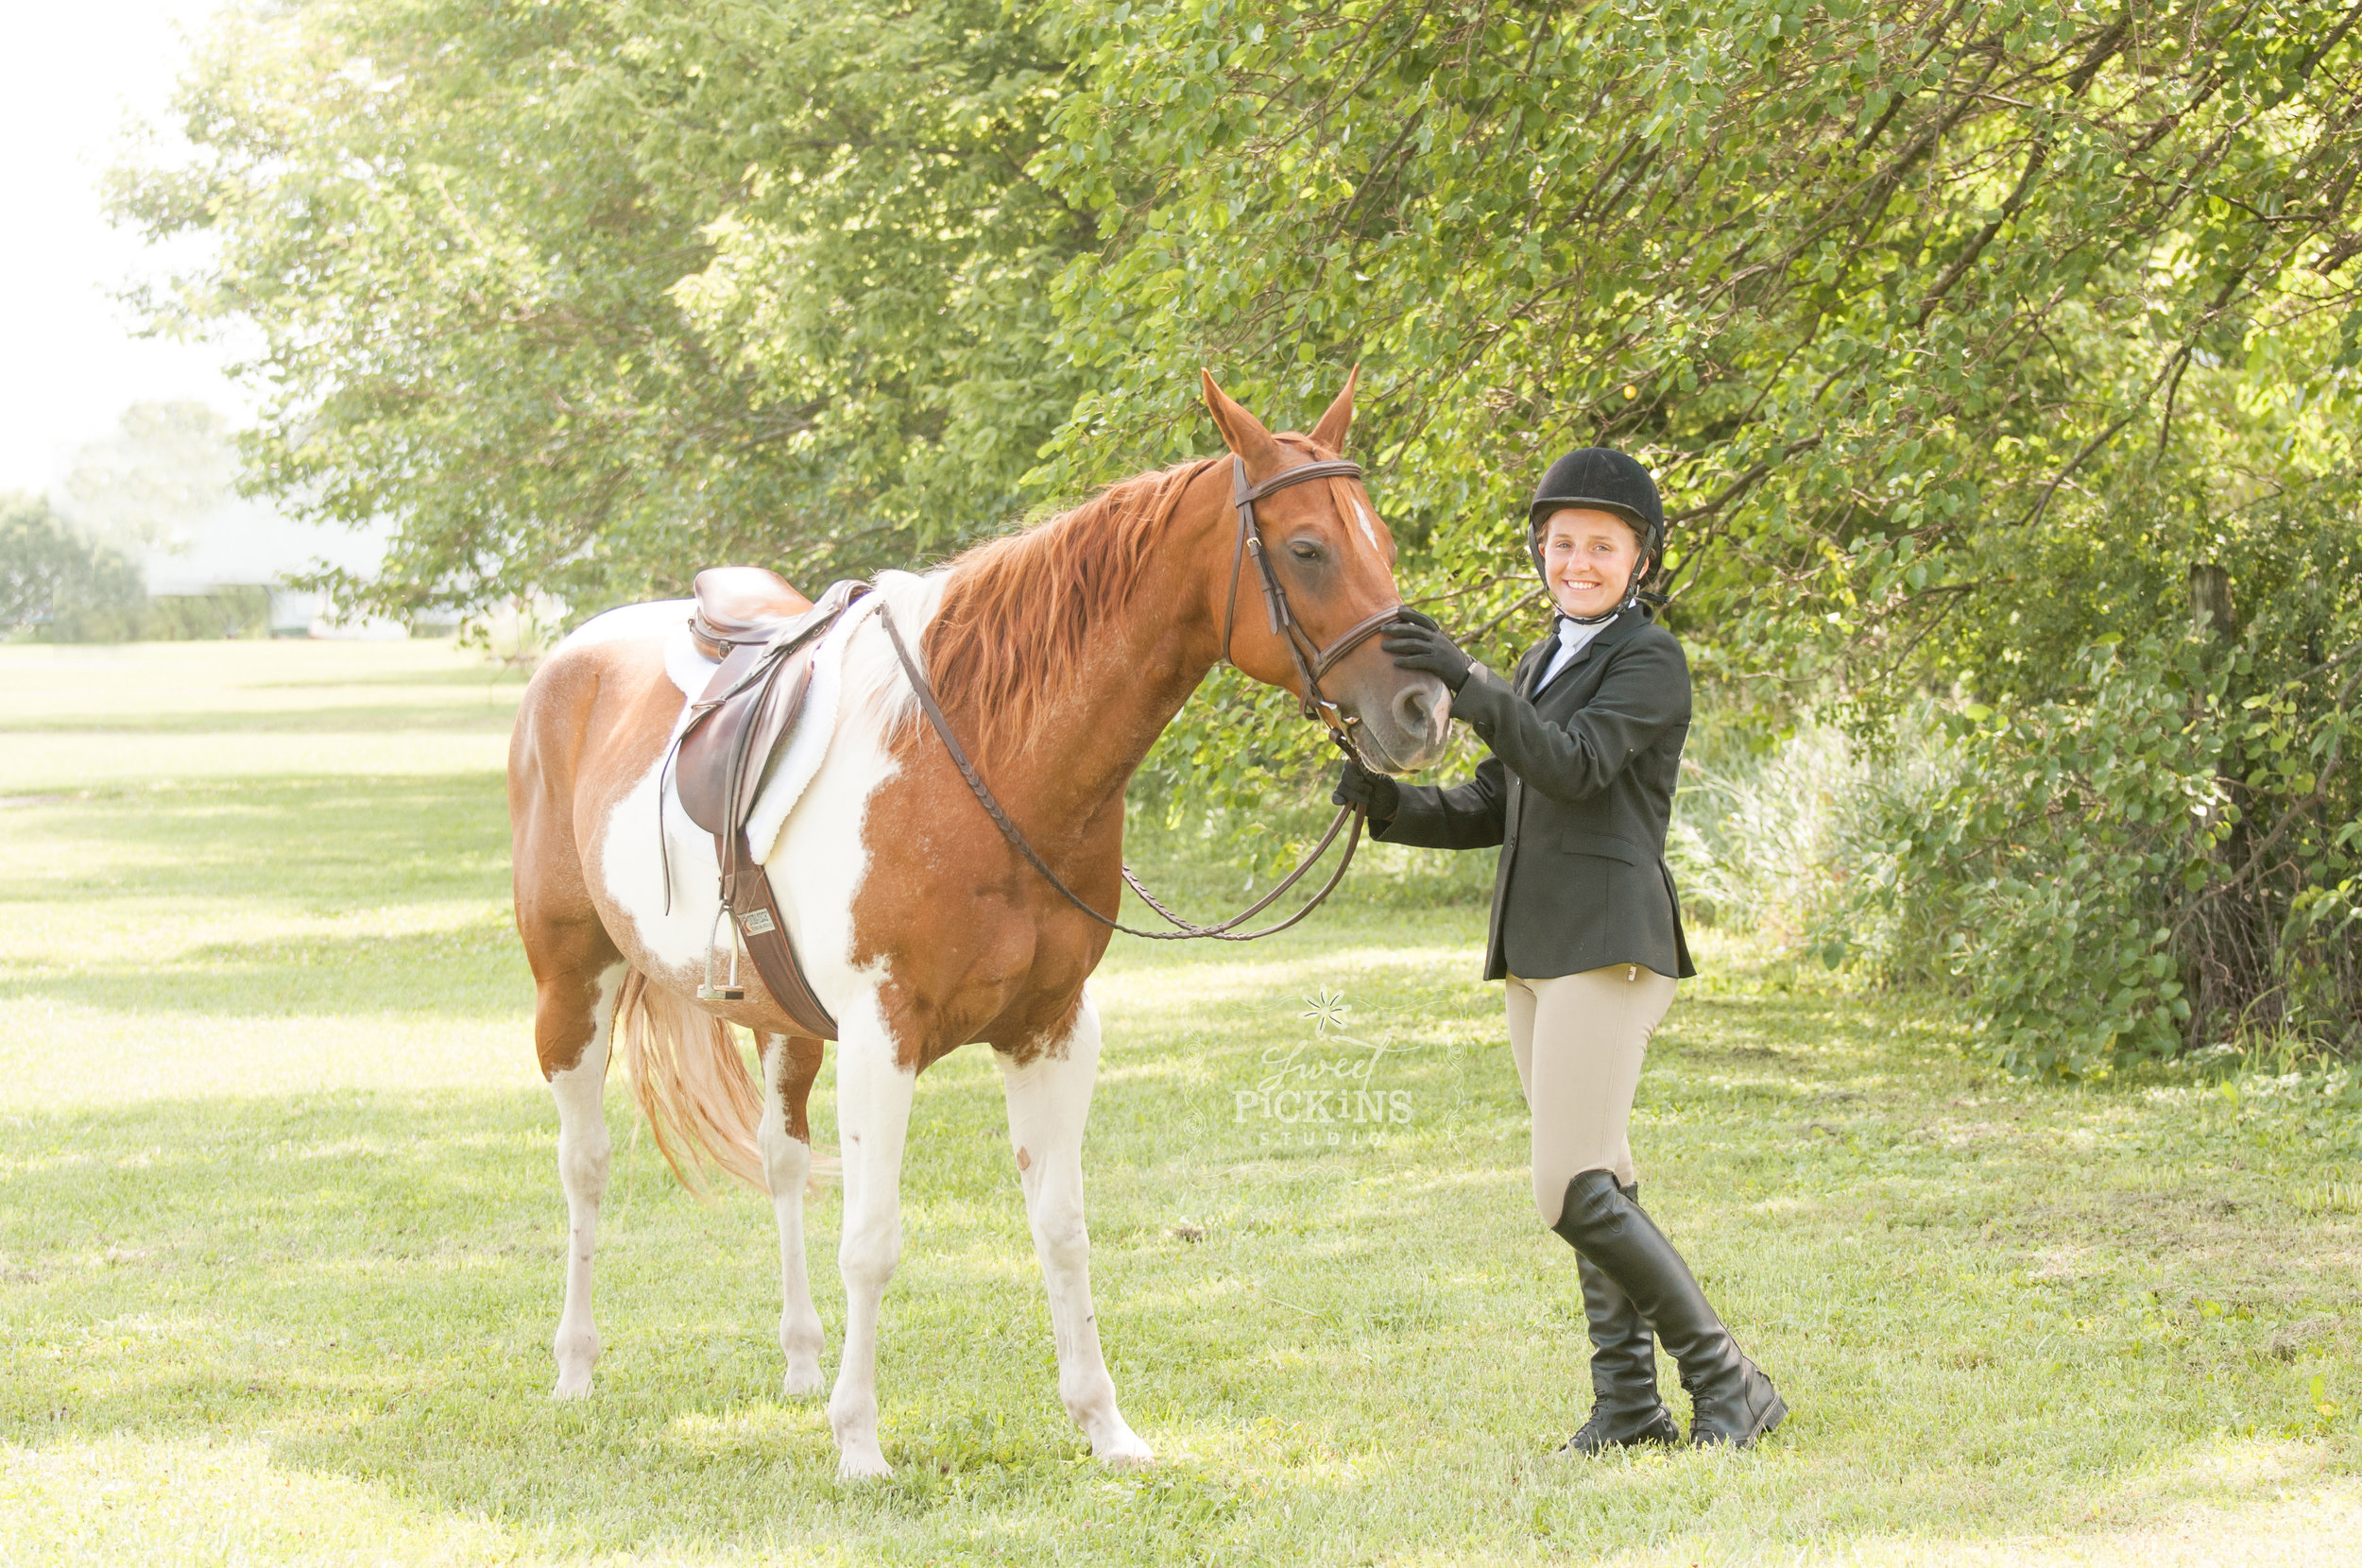 Horse and Rider Portrait Photography Session   Greentown, IN